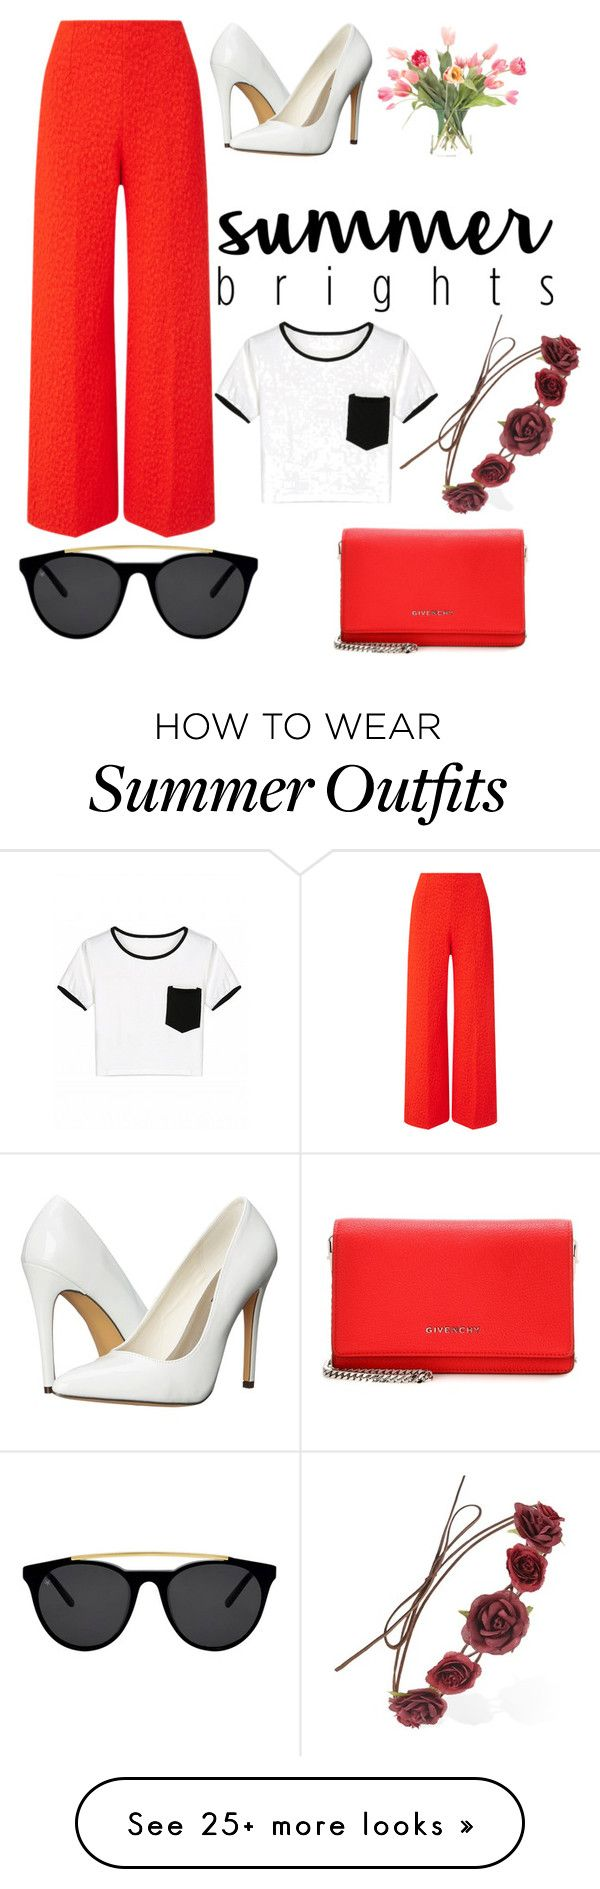 """""""summer outfit"""" by canditaannapaola on Polyvore featuring Roland Moure..."""